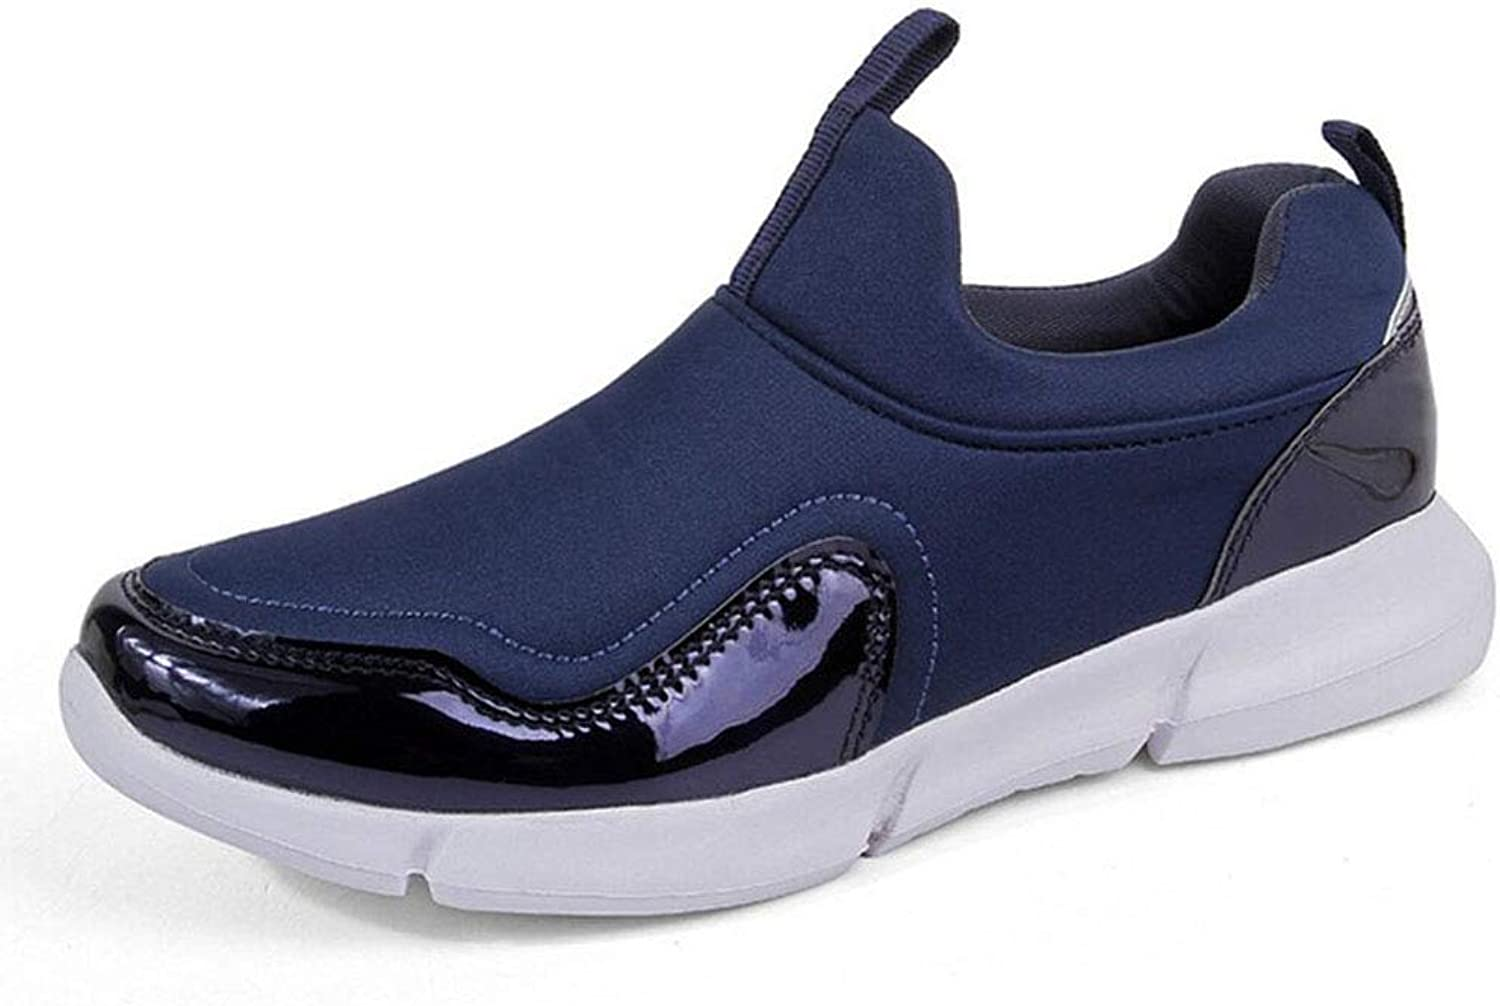 Xxoshoe Unisex Casual Sports shoes Fashion Low To Help Lazy shoes Autumn And Winter Wear Large Size 36-46